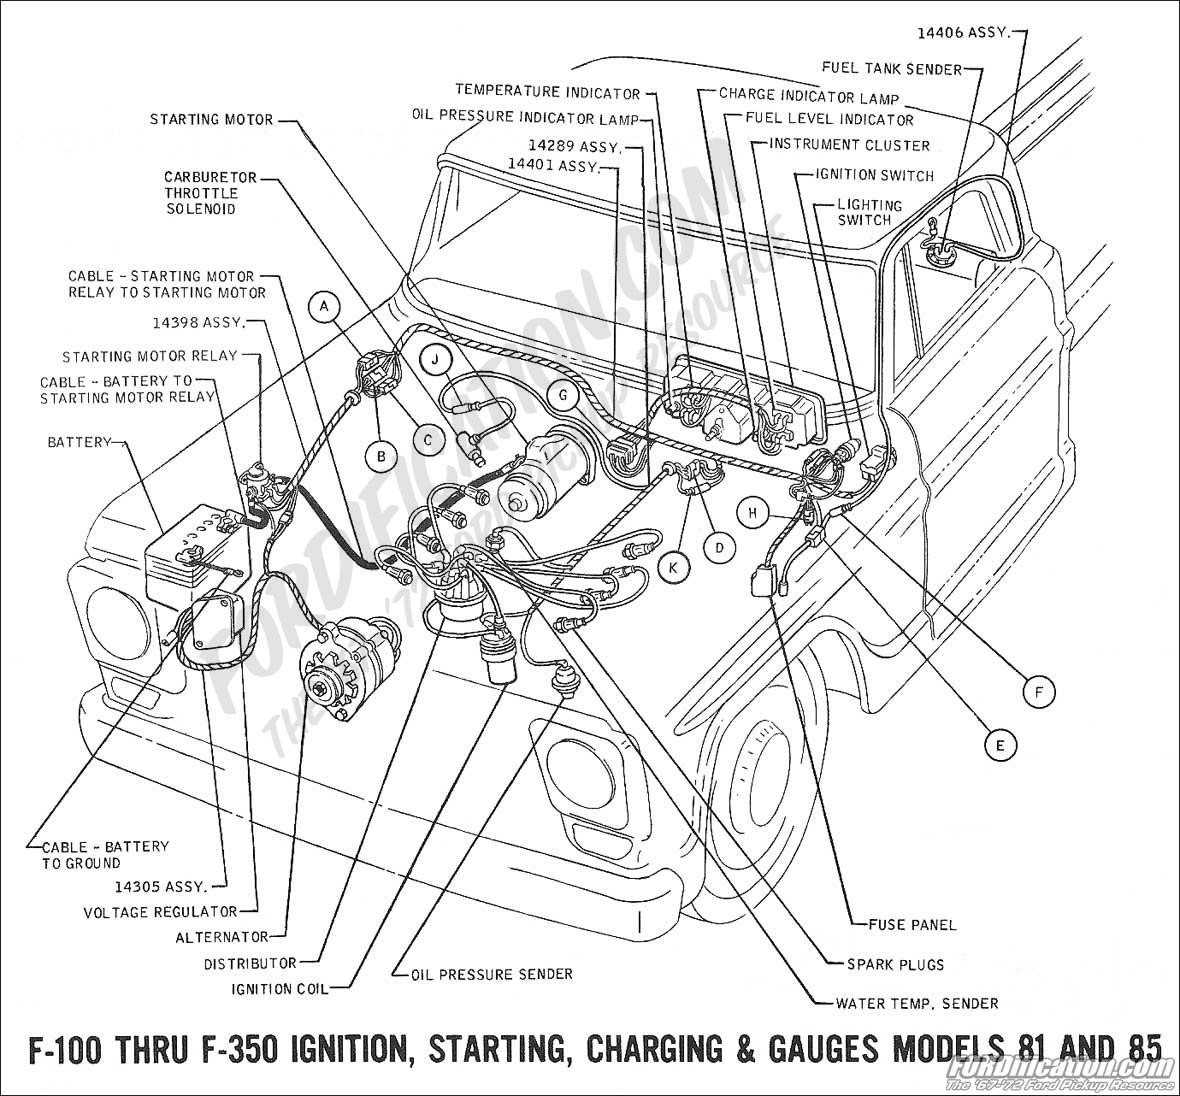 RepairGuideContent together with Encoder Motor 2005 Chevy Engine Diagram additionally Chevy S10 Crankshaft Position Sensor Location moreover 62iv9 Broad Question But 4 Wheel Drive Wont Work Ive Checked Fuses together with 3 1 Liter GM Engine Diagram. on 1996 tahoe wiring diagram